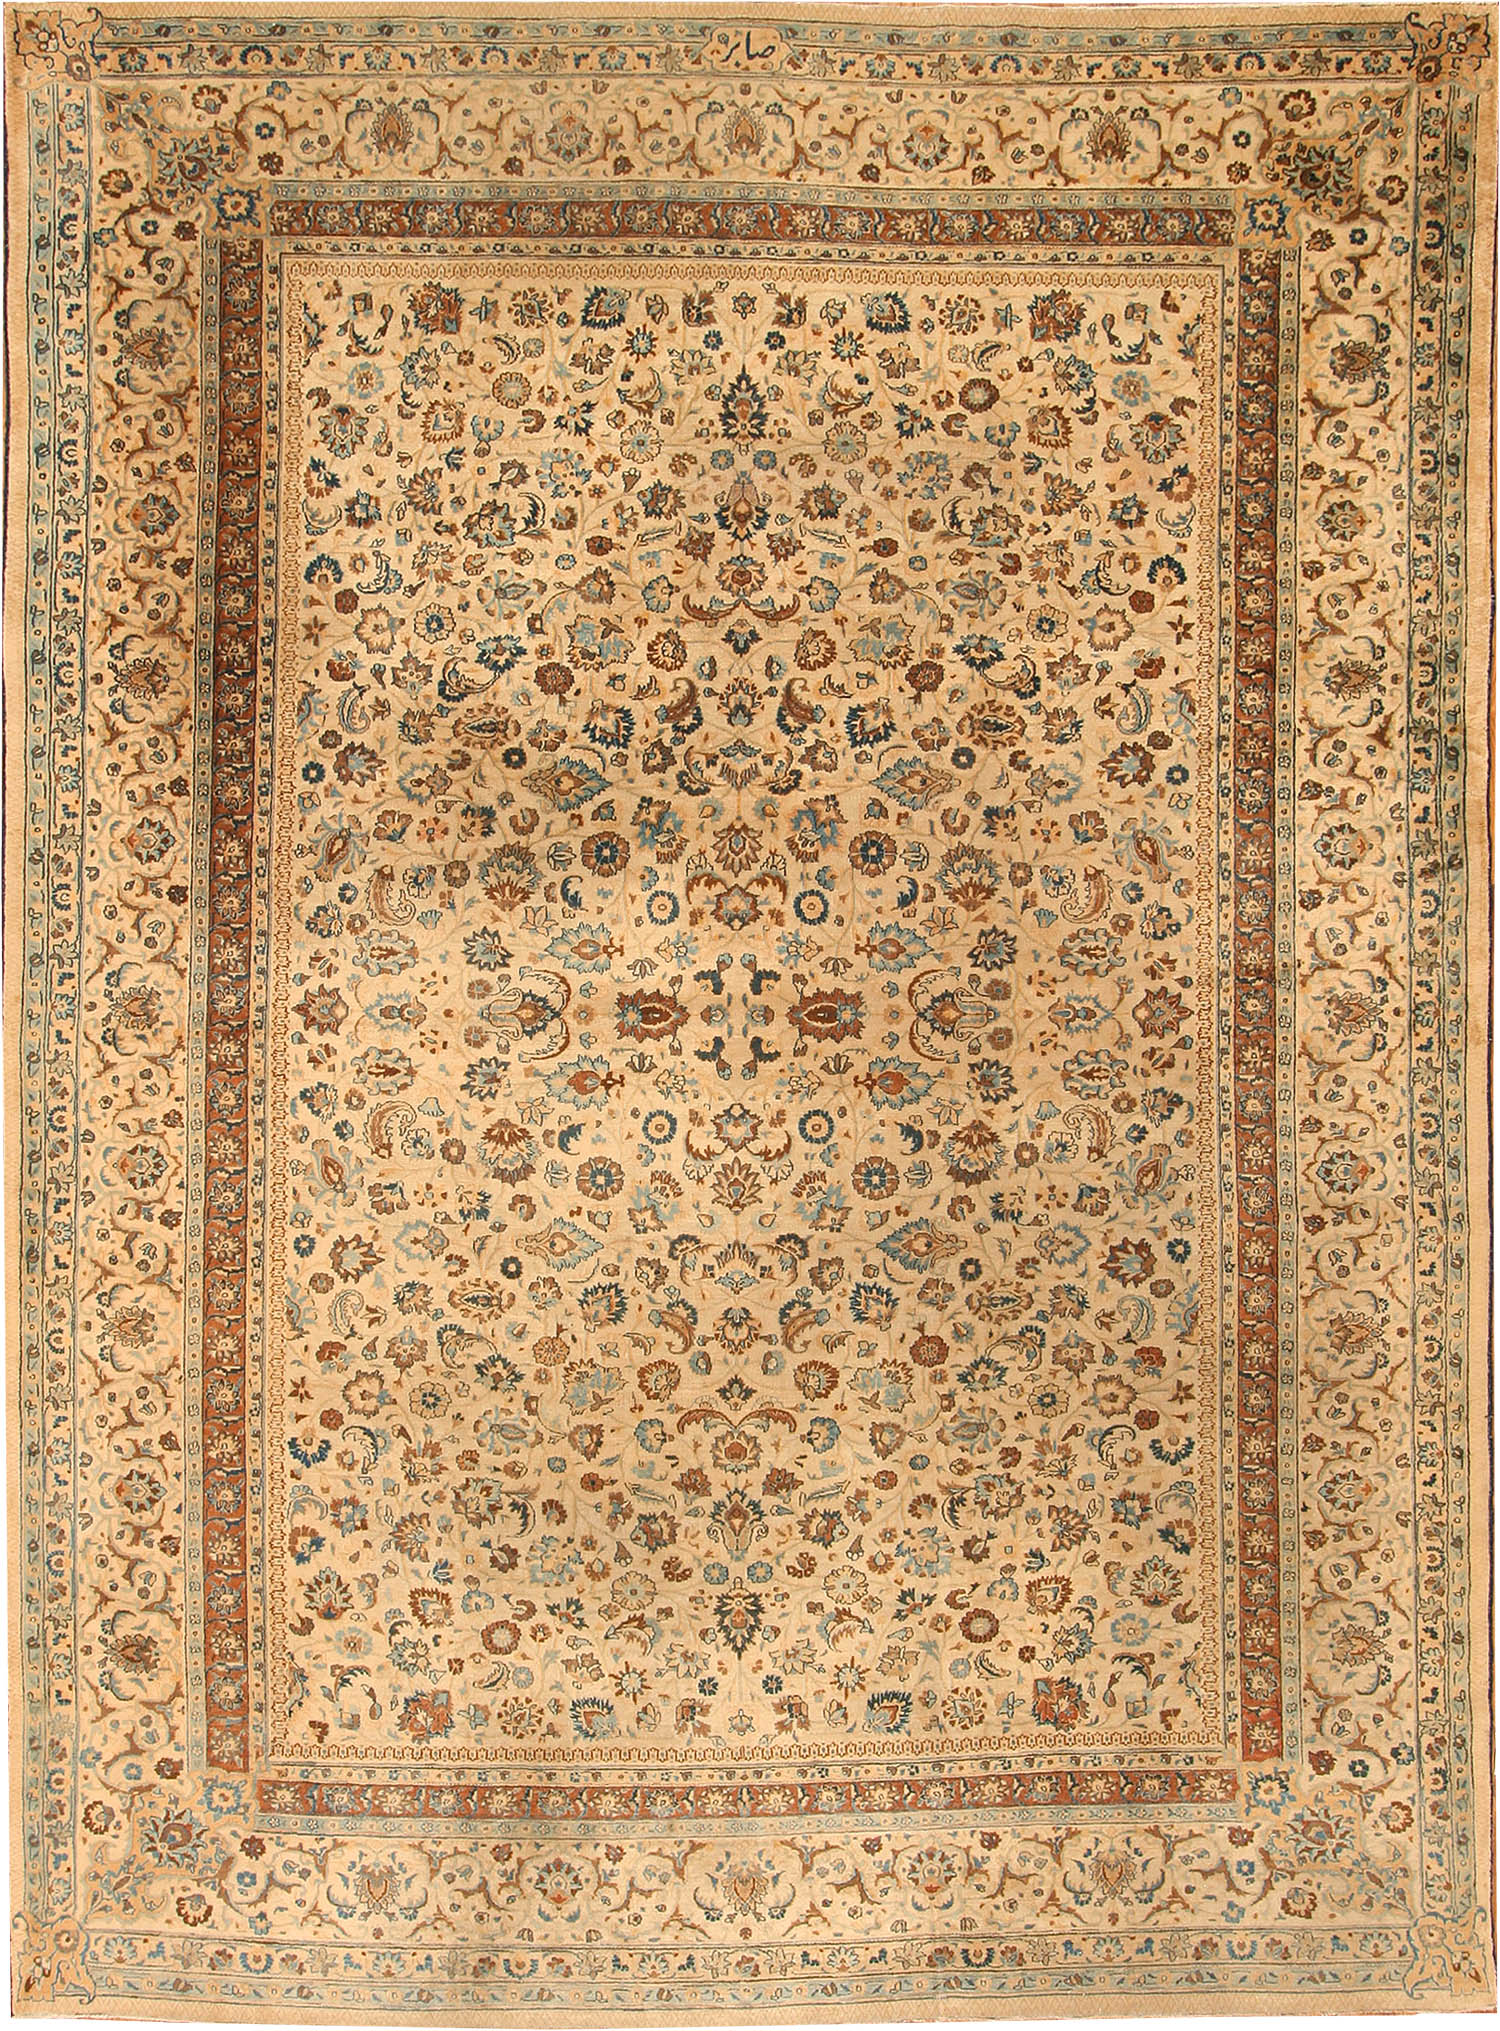 Carpet Persian rug persian carpet: pgday.postgres-arg.org/home-decor/carpet-persian